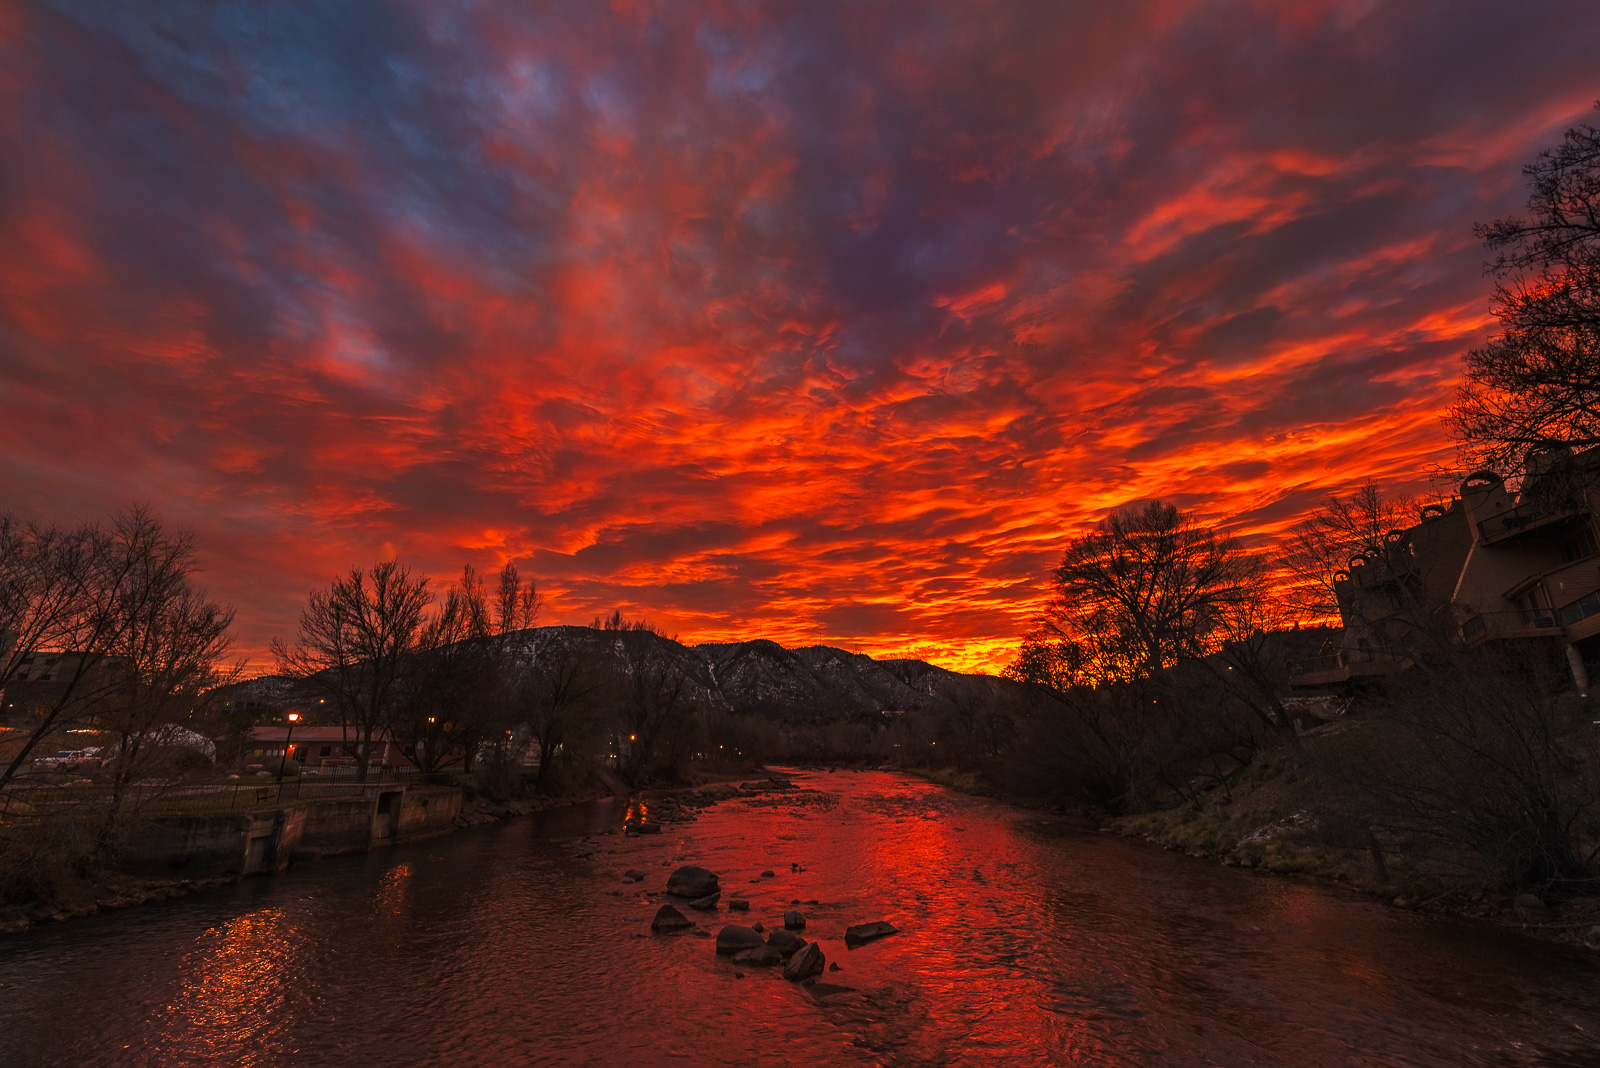 Wow - what an intense sunset from my backyard on the Animas River bridge looking towards Smelter Mountain here in Durango. I...